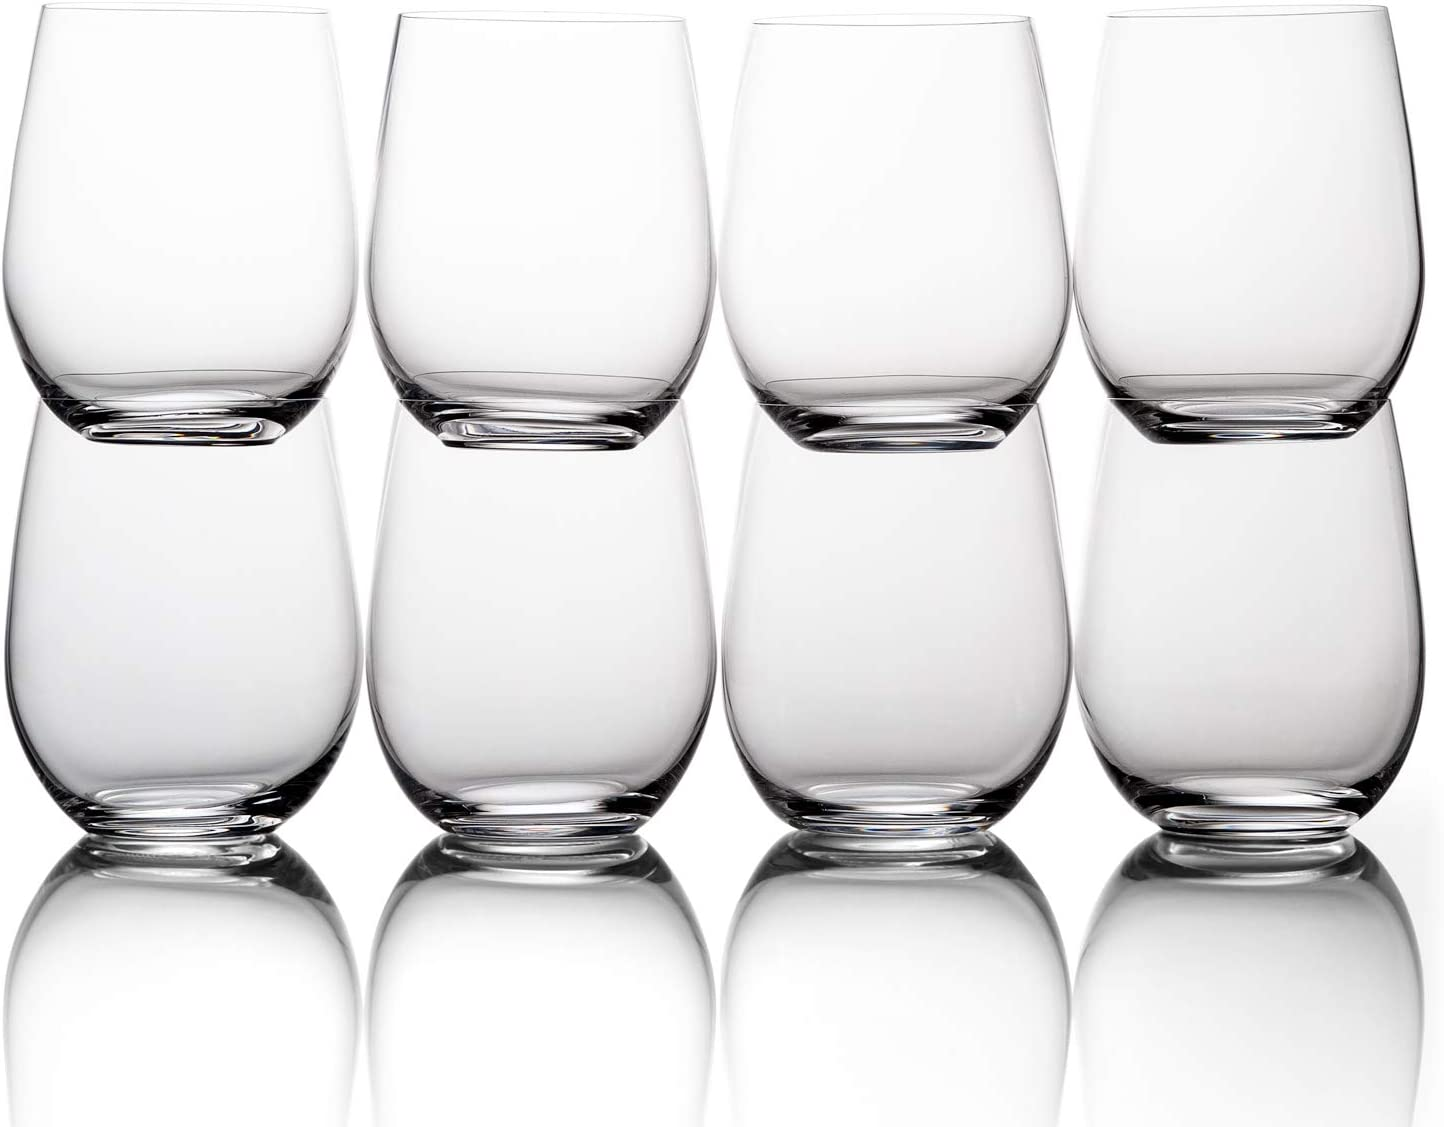 "GiftTree ""O"" Wine Tumbler for Viognier/Chardonnay by RIEDEL 